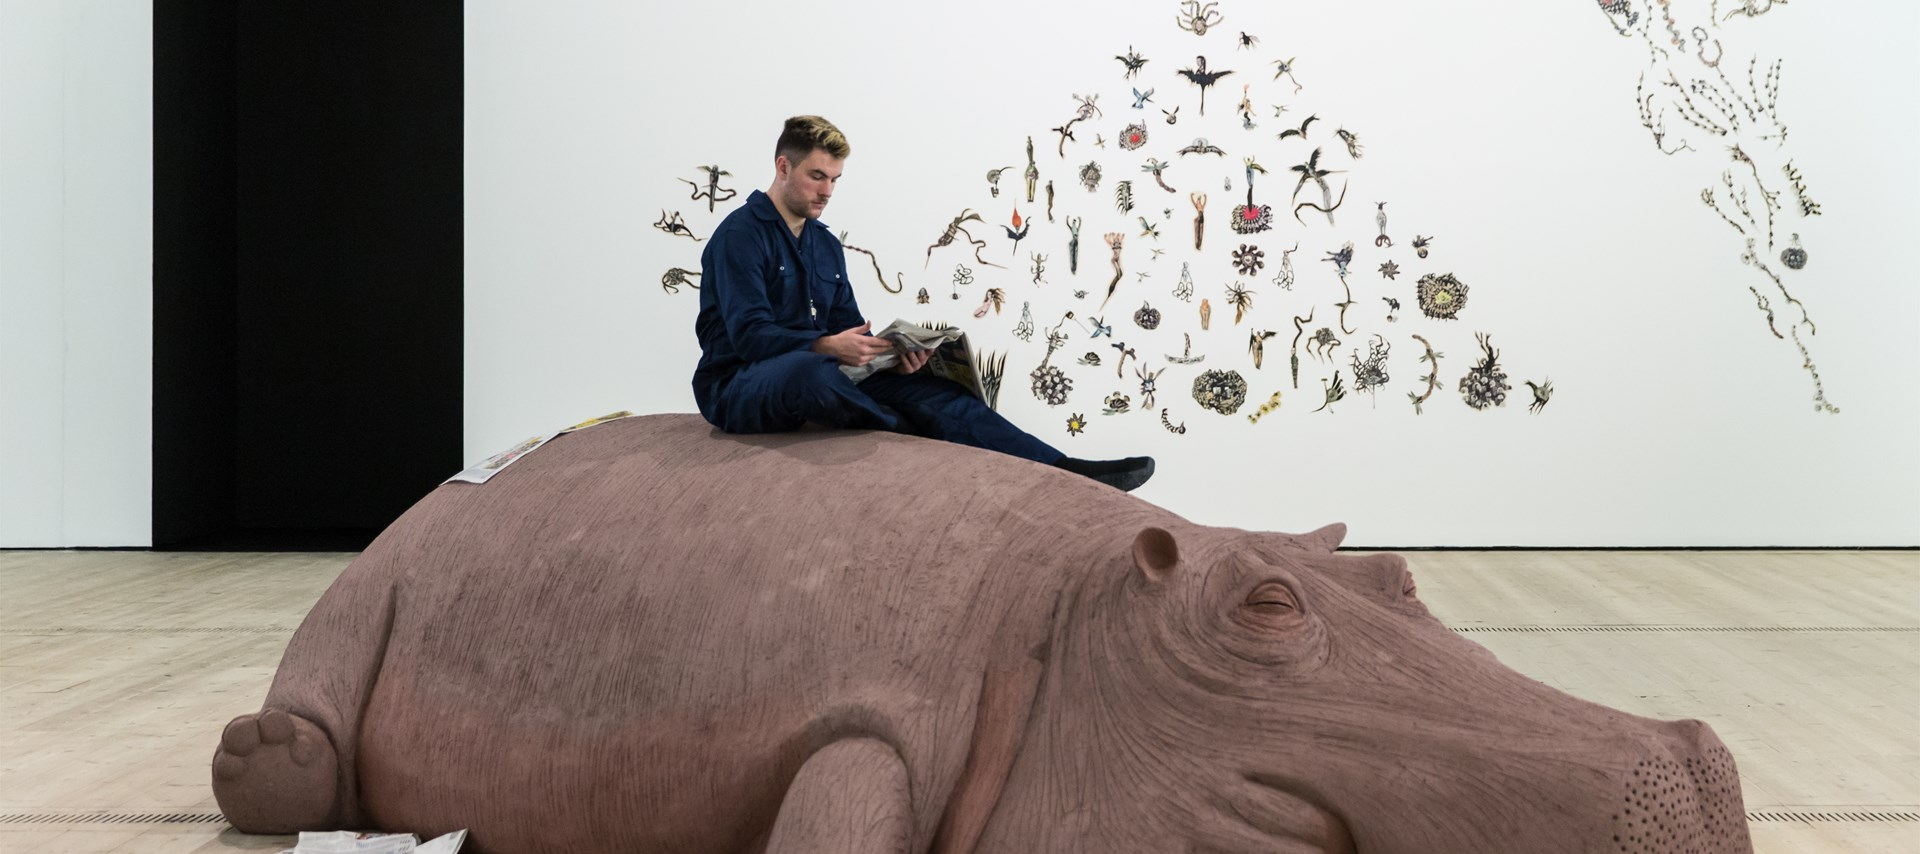 Animalesque: Installation View by Rob Harris. © BALTIC 2019